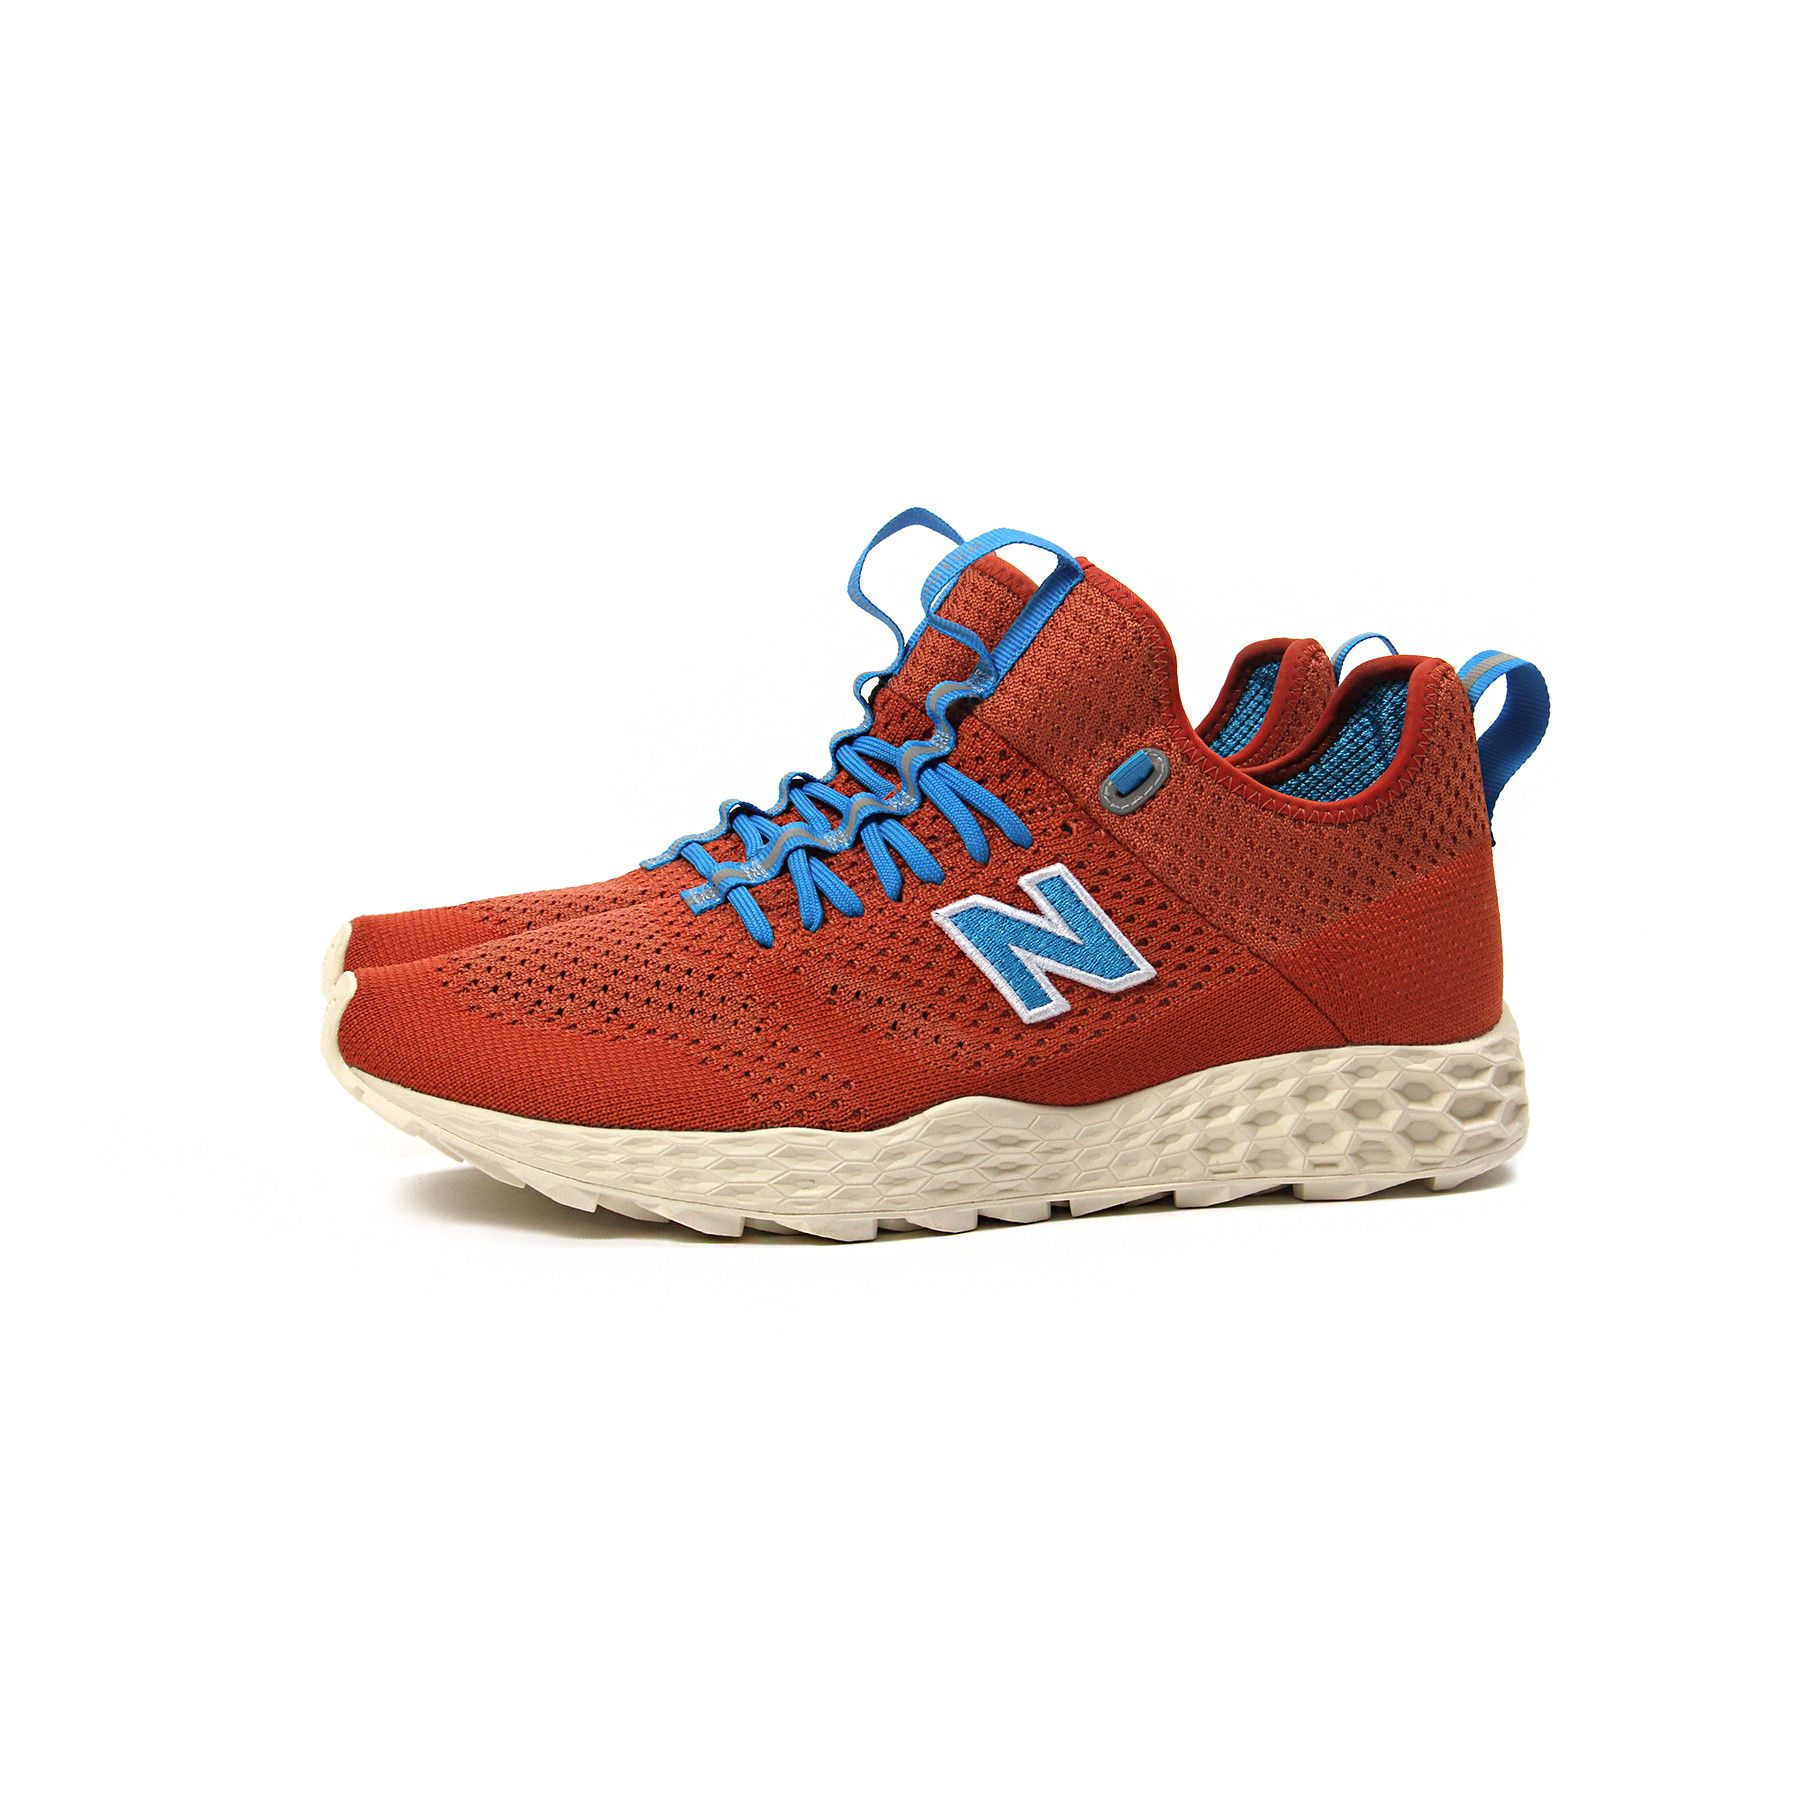 meilleur service bdee8 9518f Concepts International | Concepts X New Balance Trailbuster ...